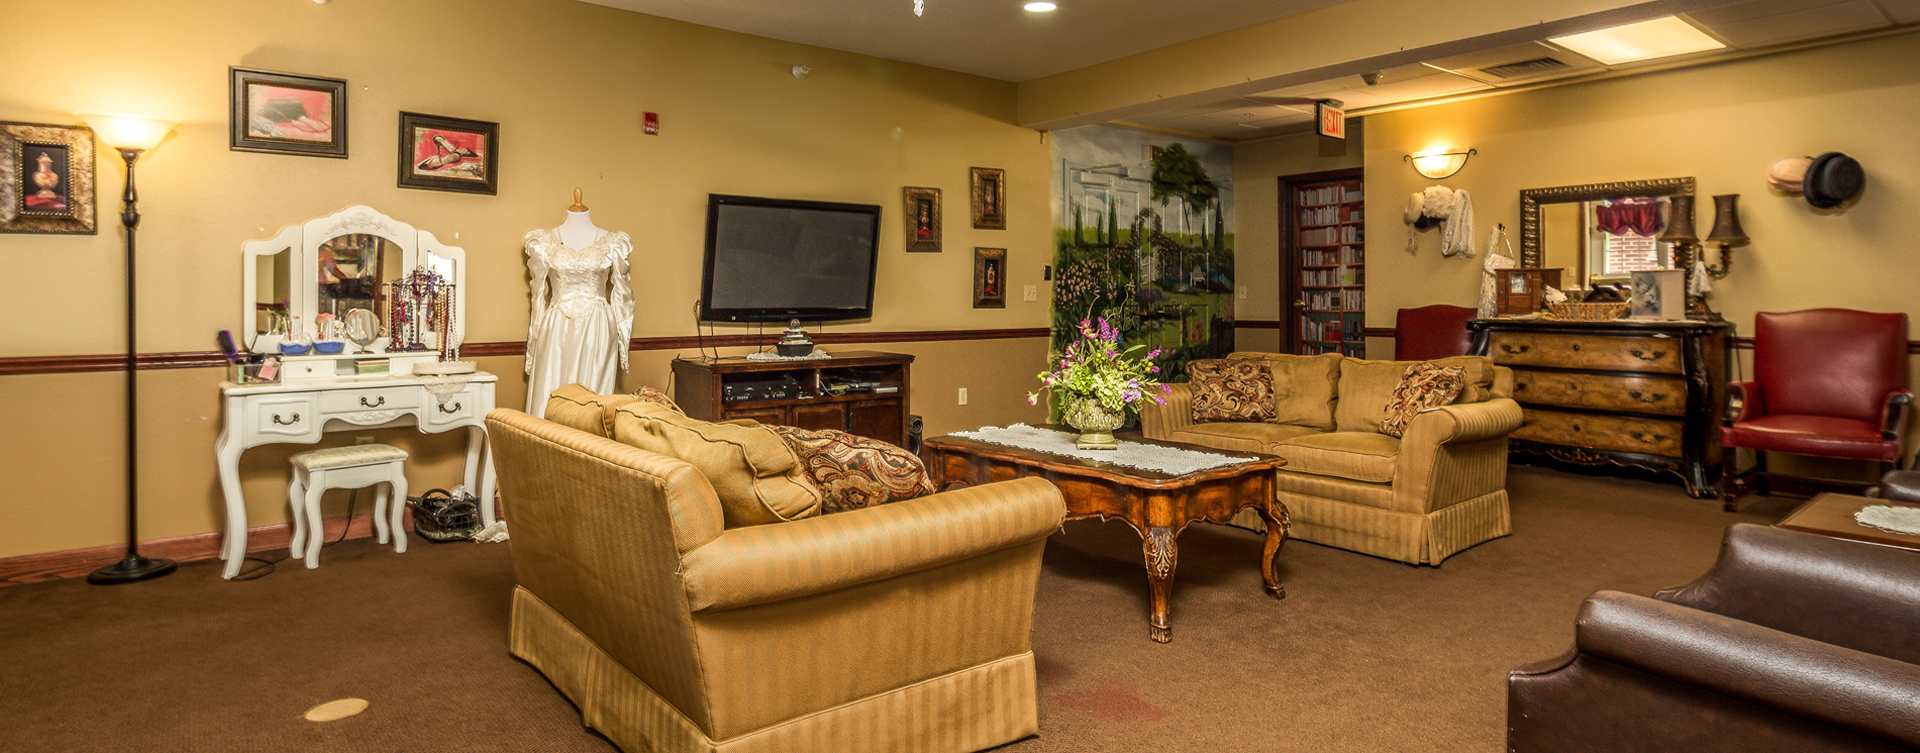 Chairs and sofas sit higher and are easier to get in and out of in the Mary B's living room at Bickford of Battle Creek